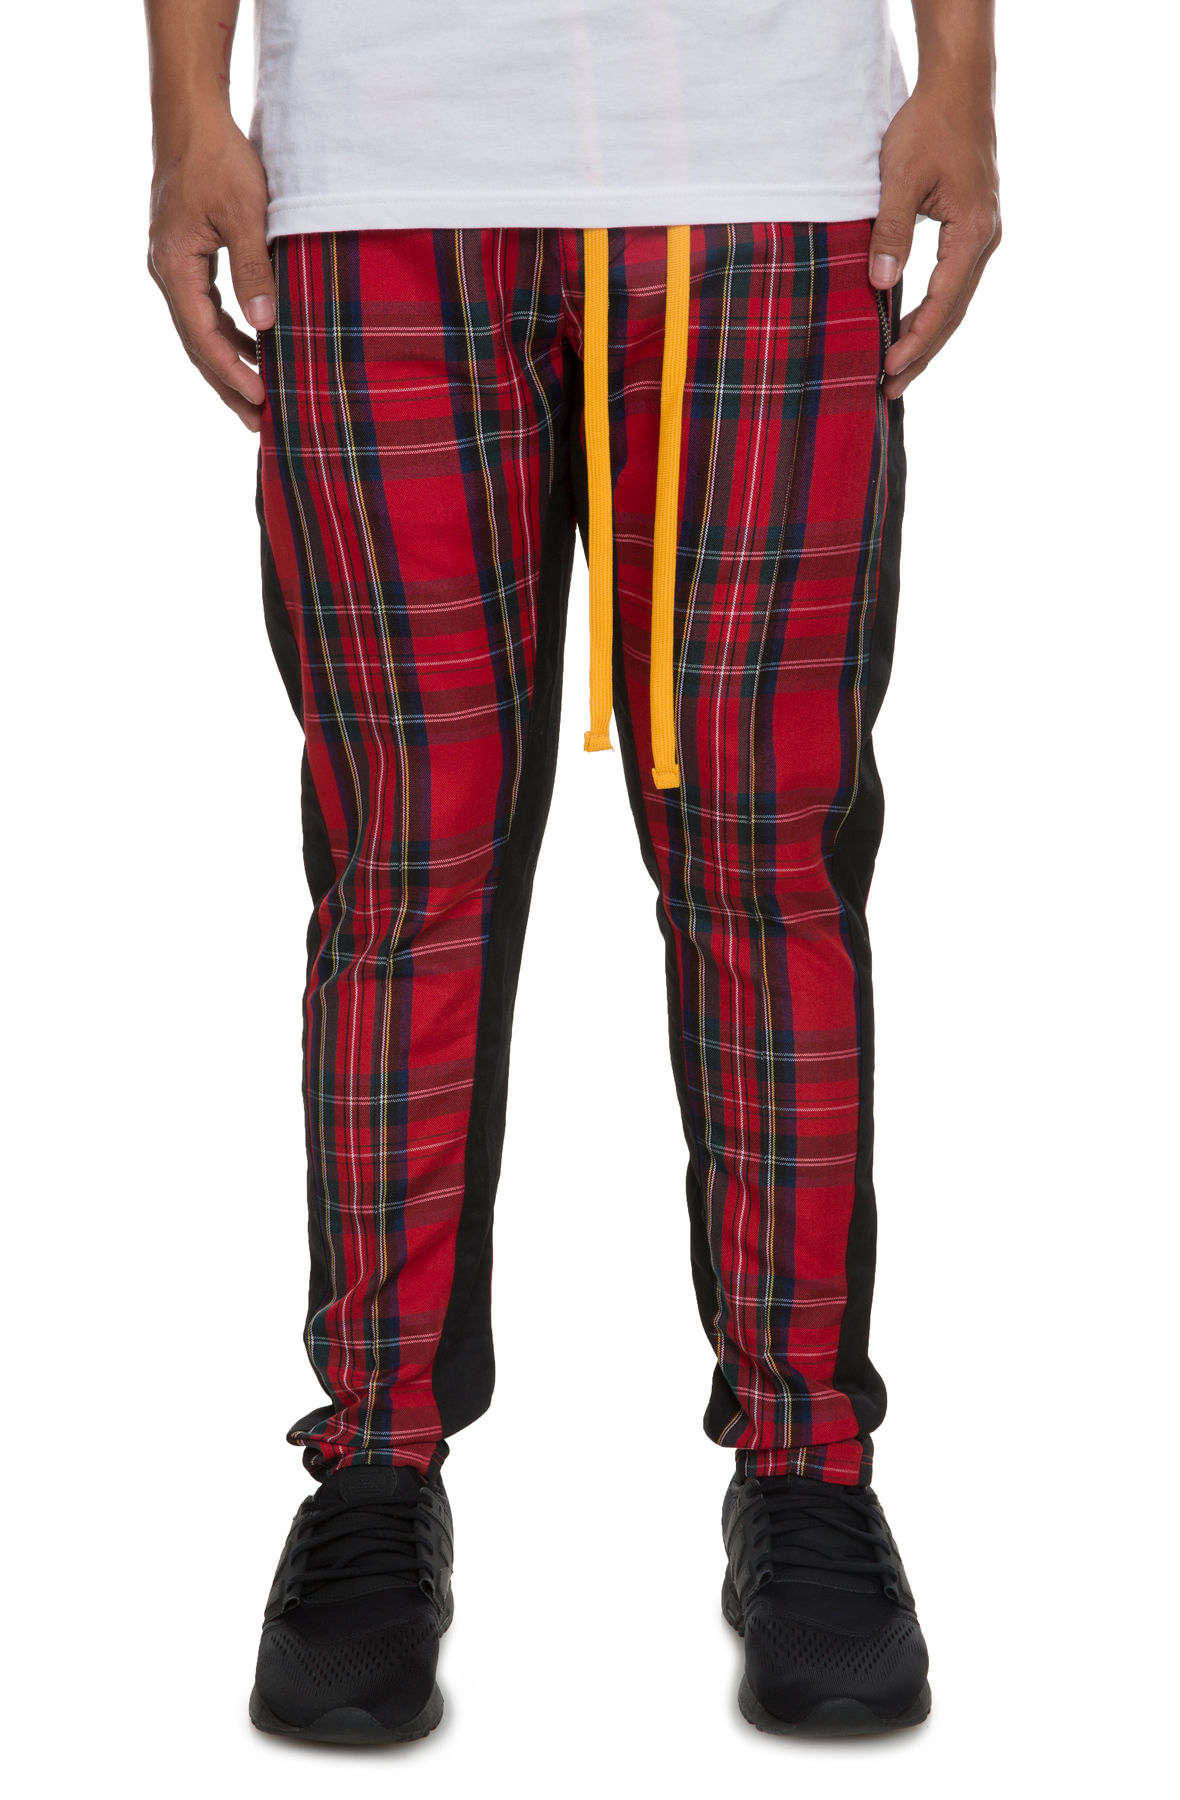 Image of The Tartan Track Pants in Red